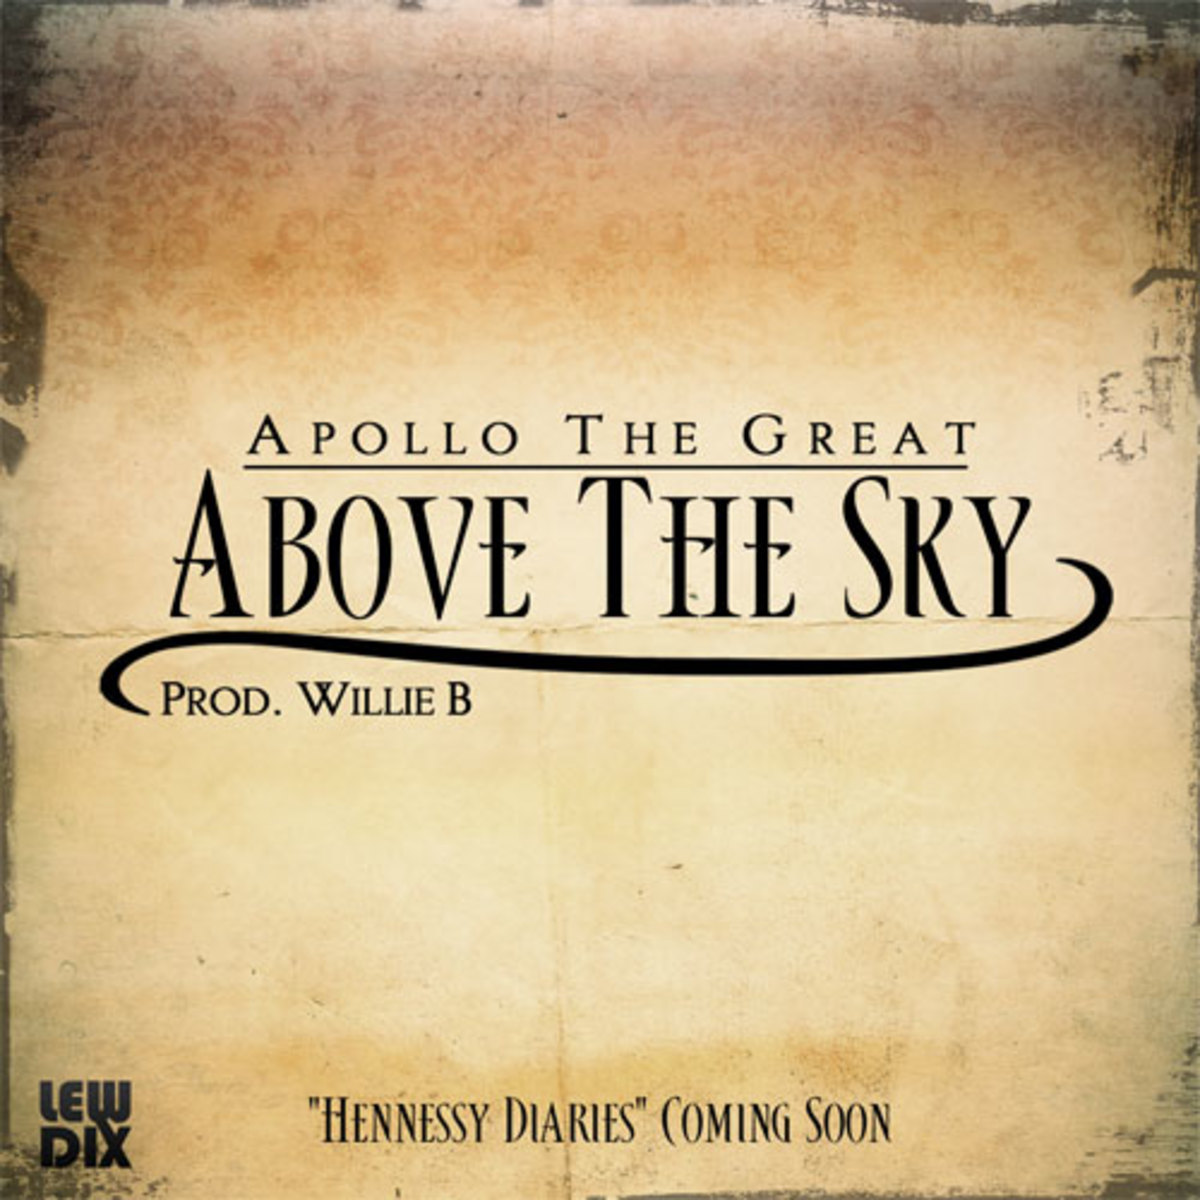 apollothegreat-abovesky.jpg